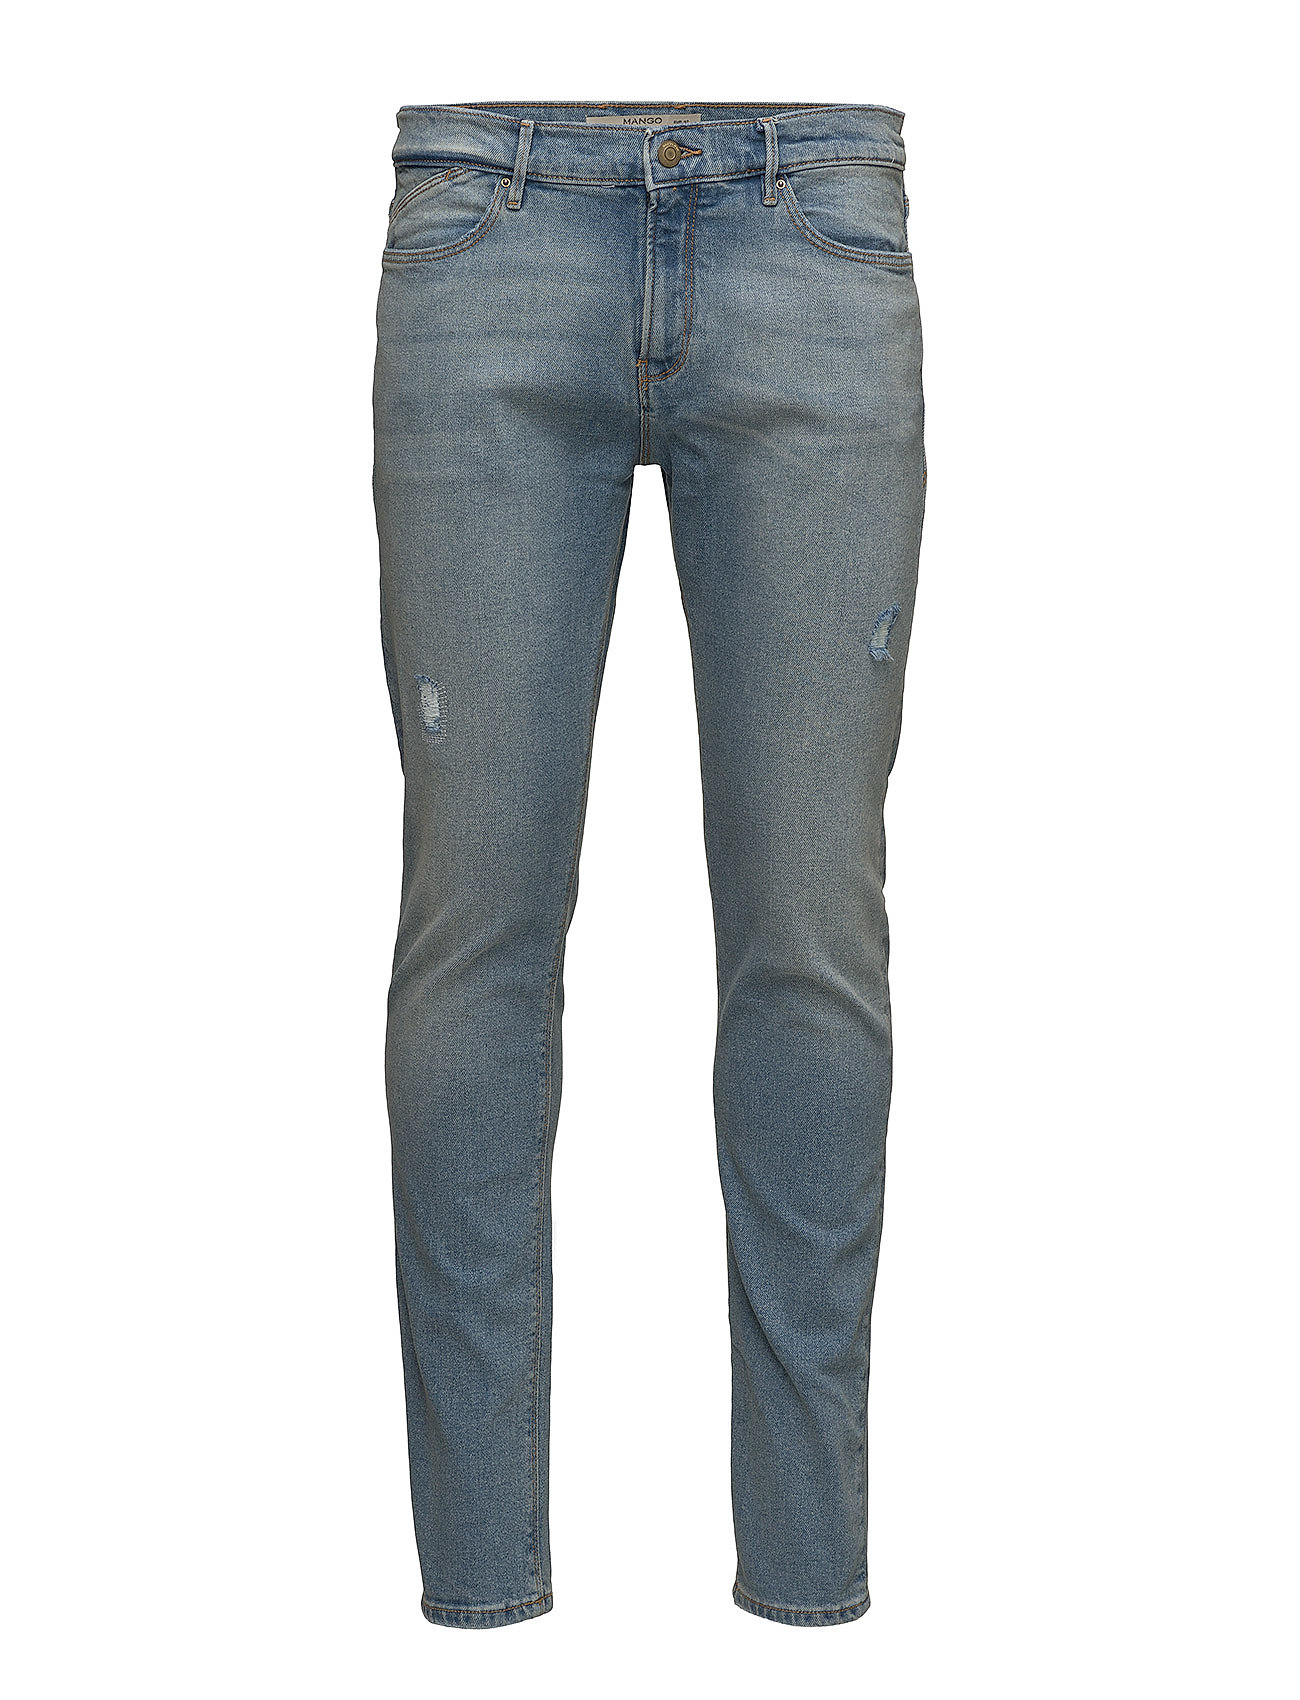 Skinny Light Wash Jude Jeans thumbnail